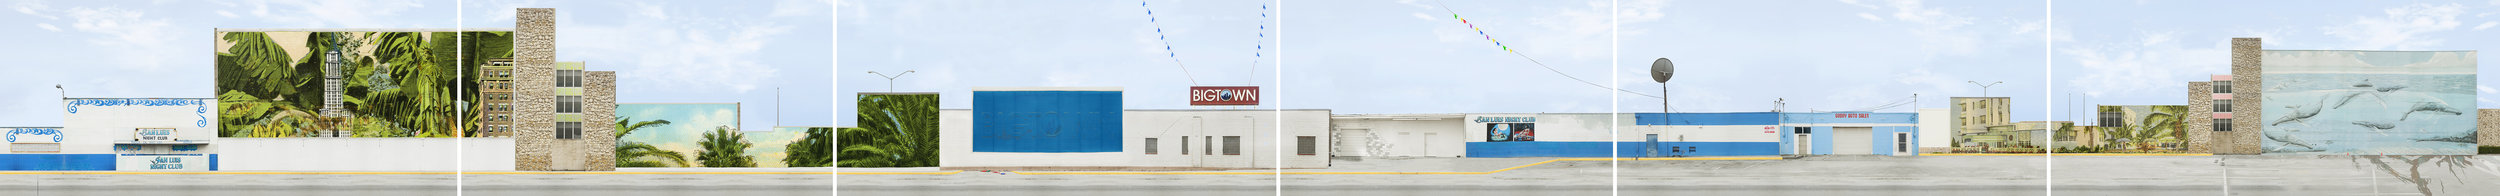 The Strip,  6 panels, 20 inches x approximately 22 feet, archival pigment prints, 2013